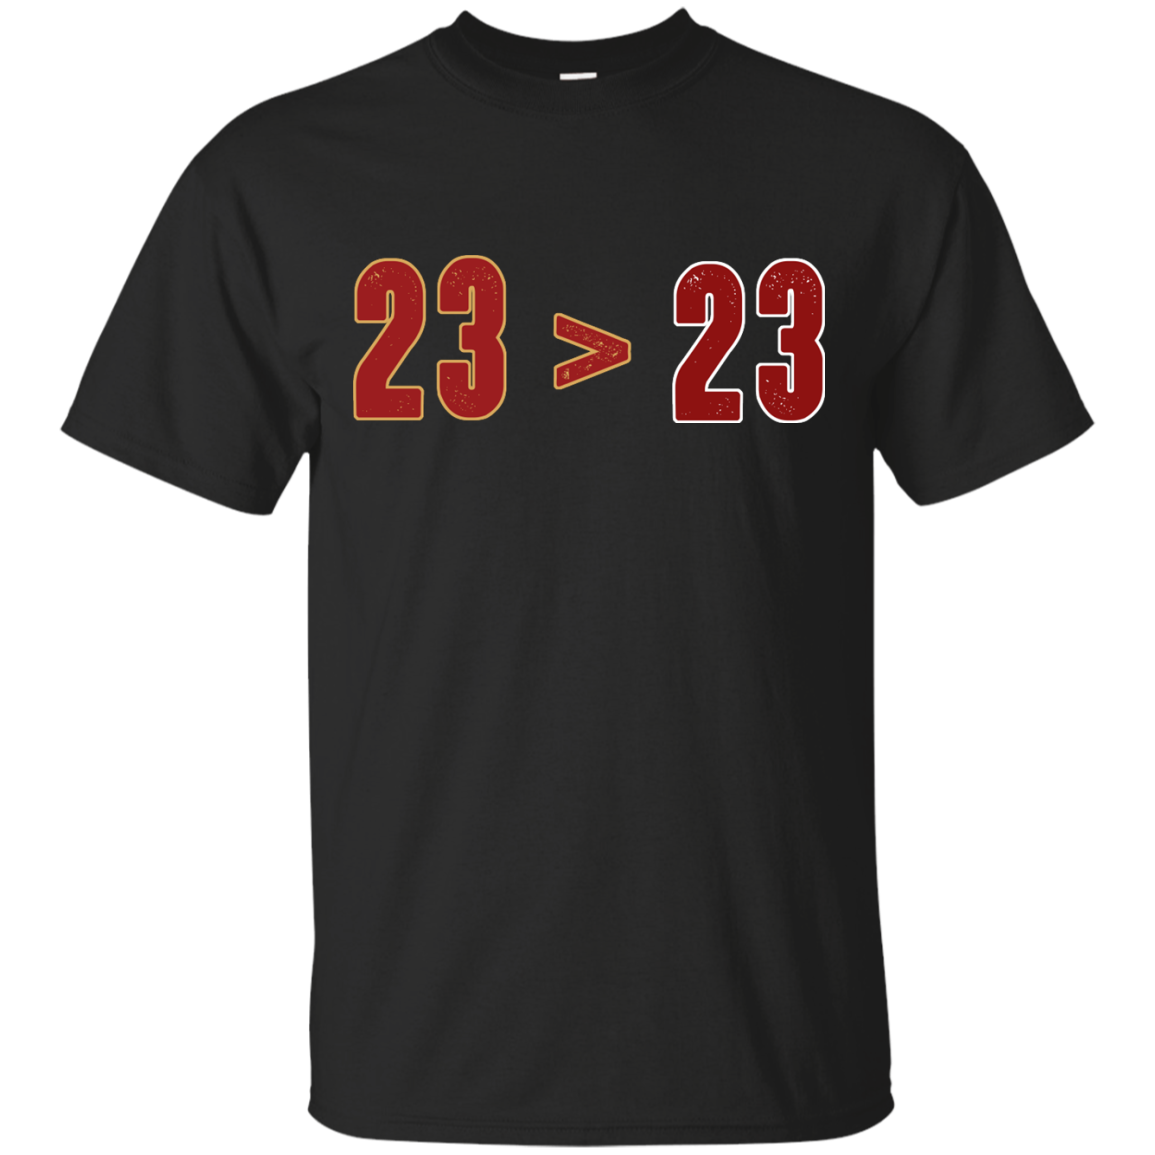 23 Greater than 23 T shirt, LeBron Greater Than Jordan T shirt,Tank top & Hoodies